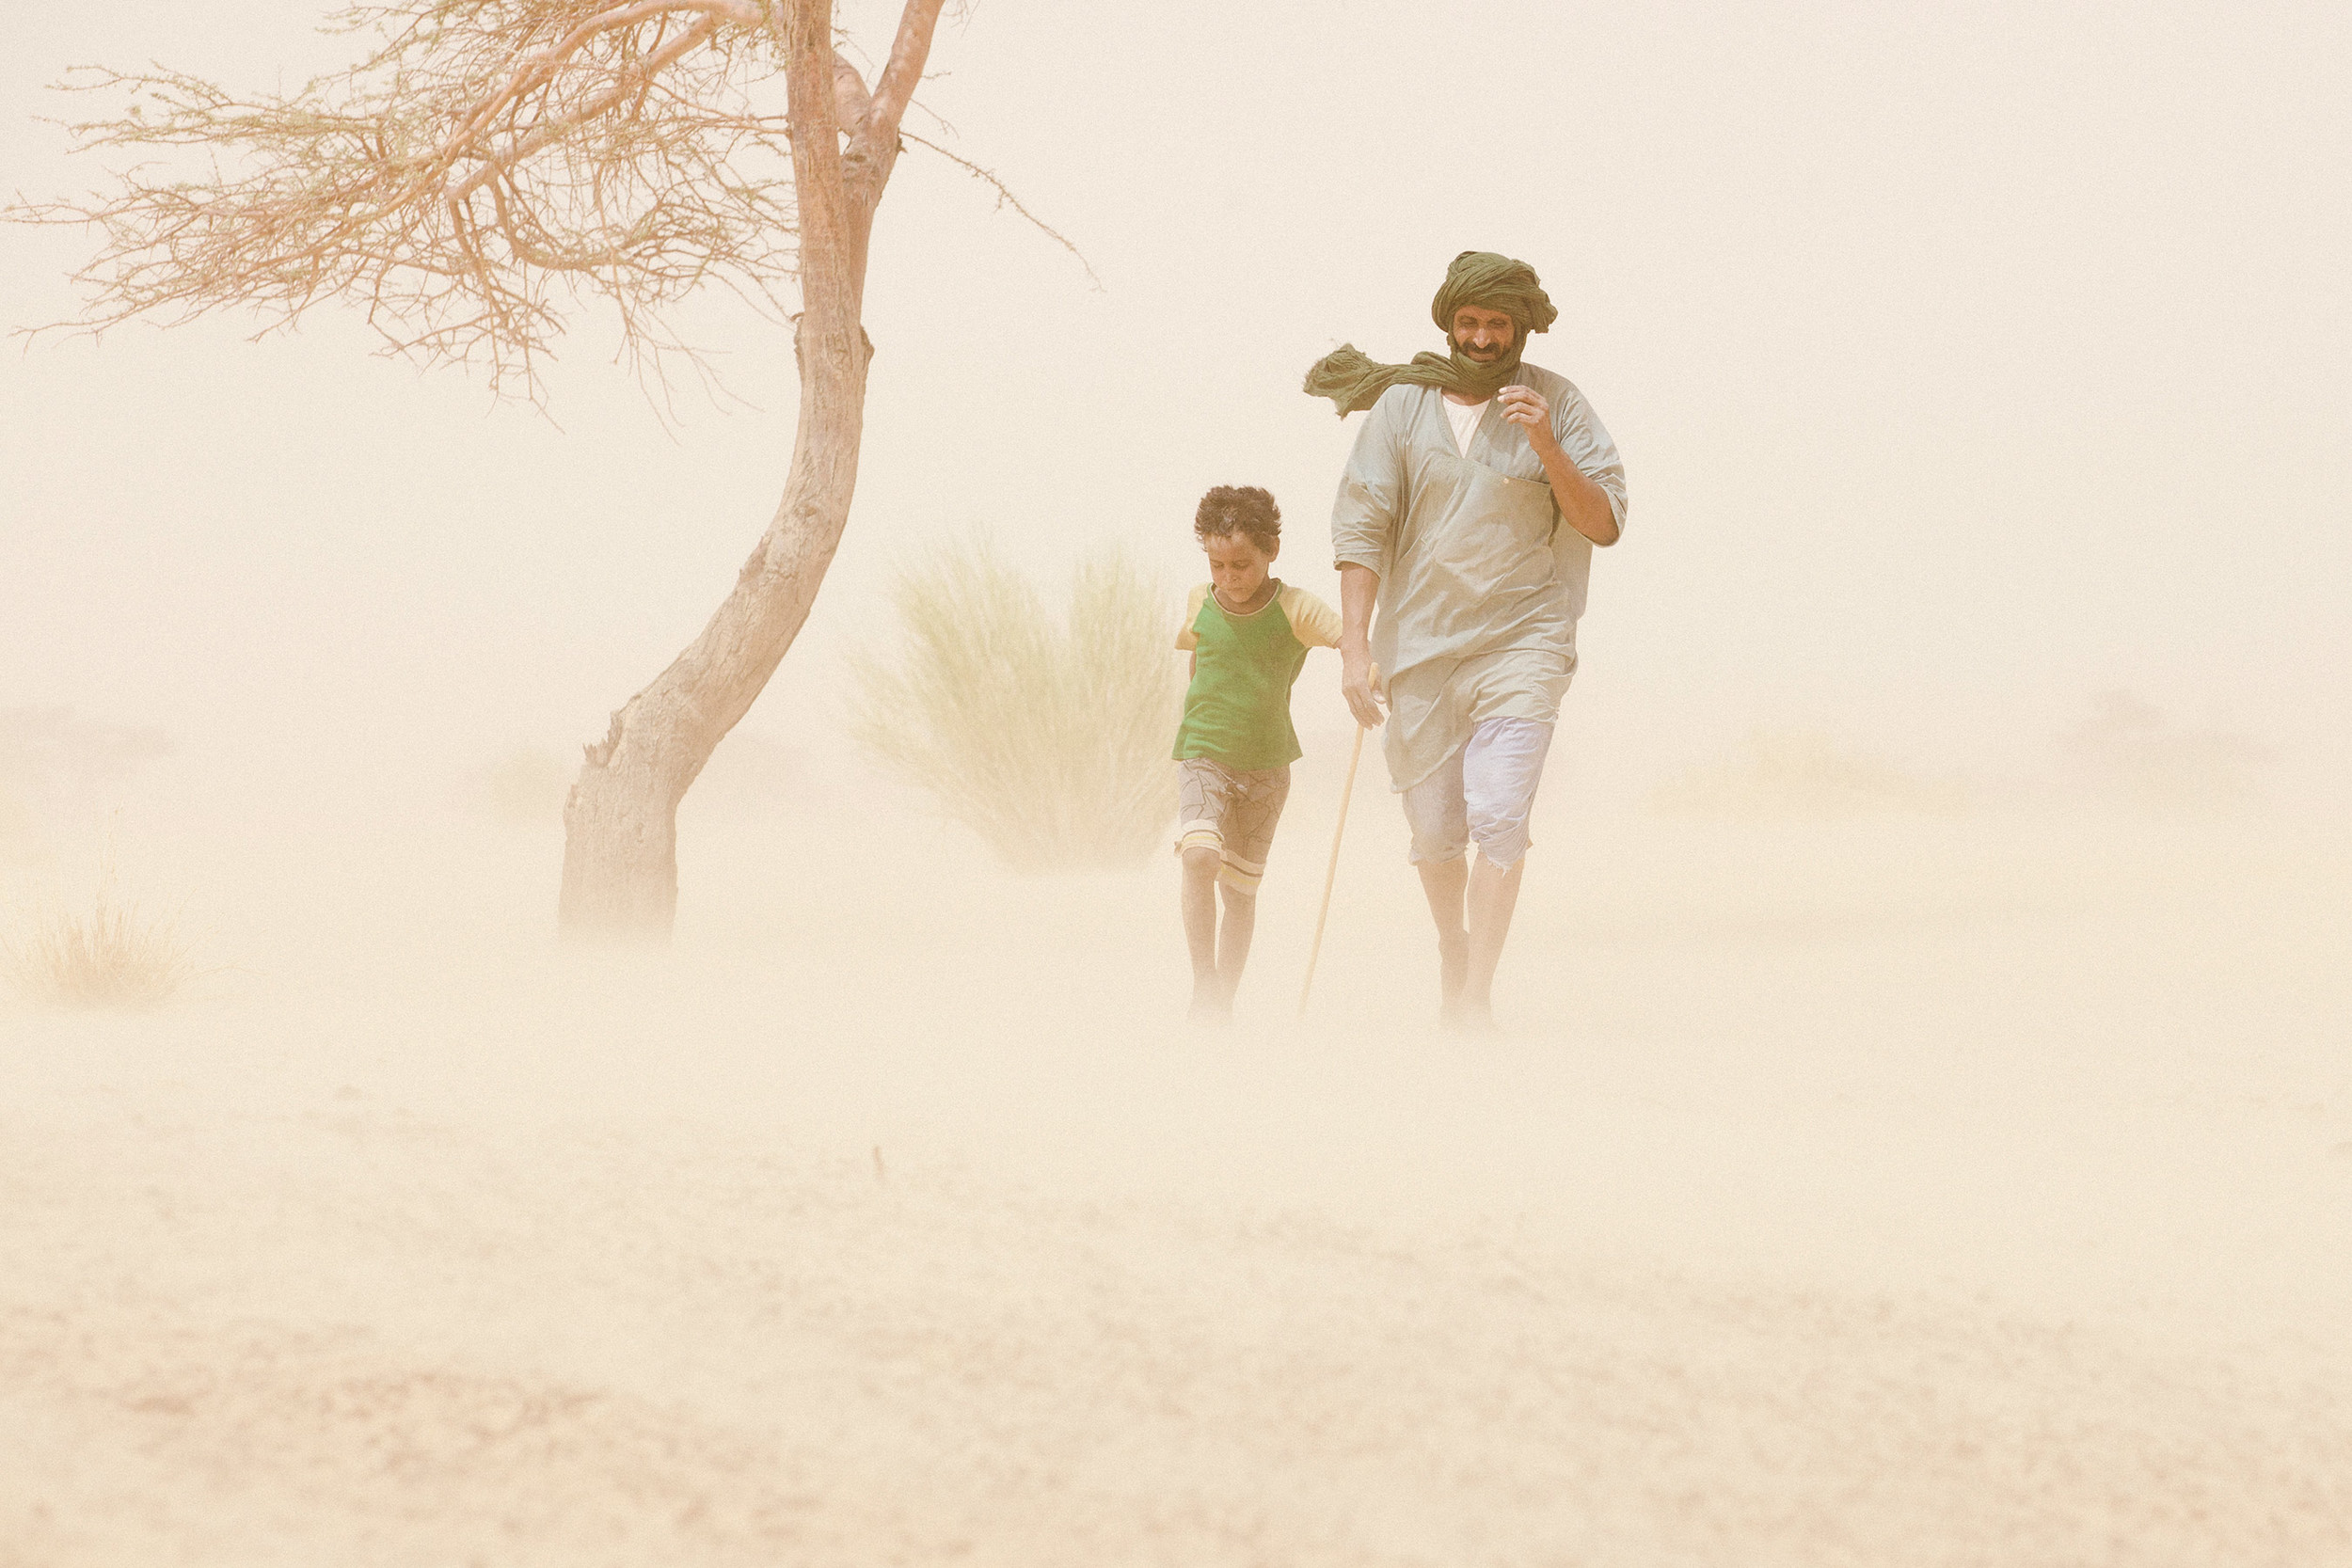 Father and son in a sand storm